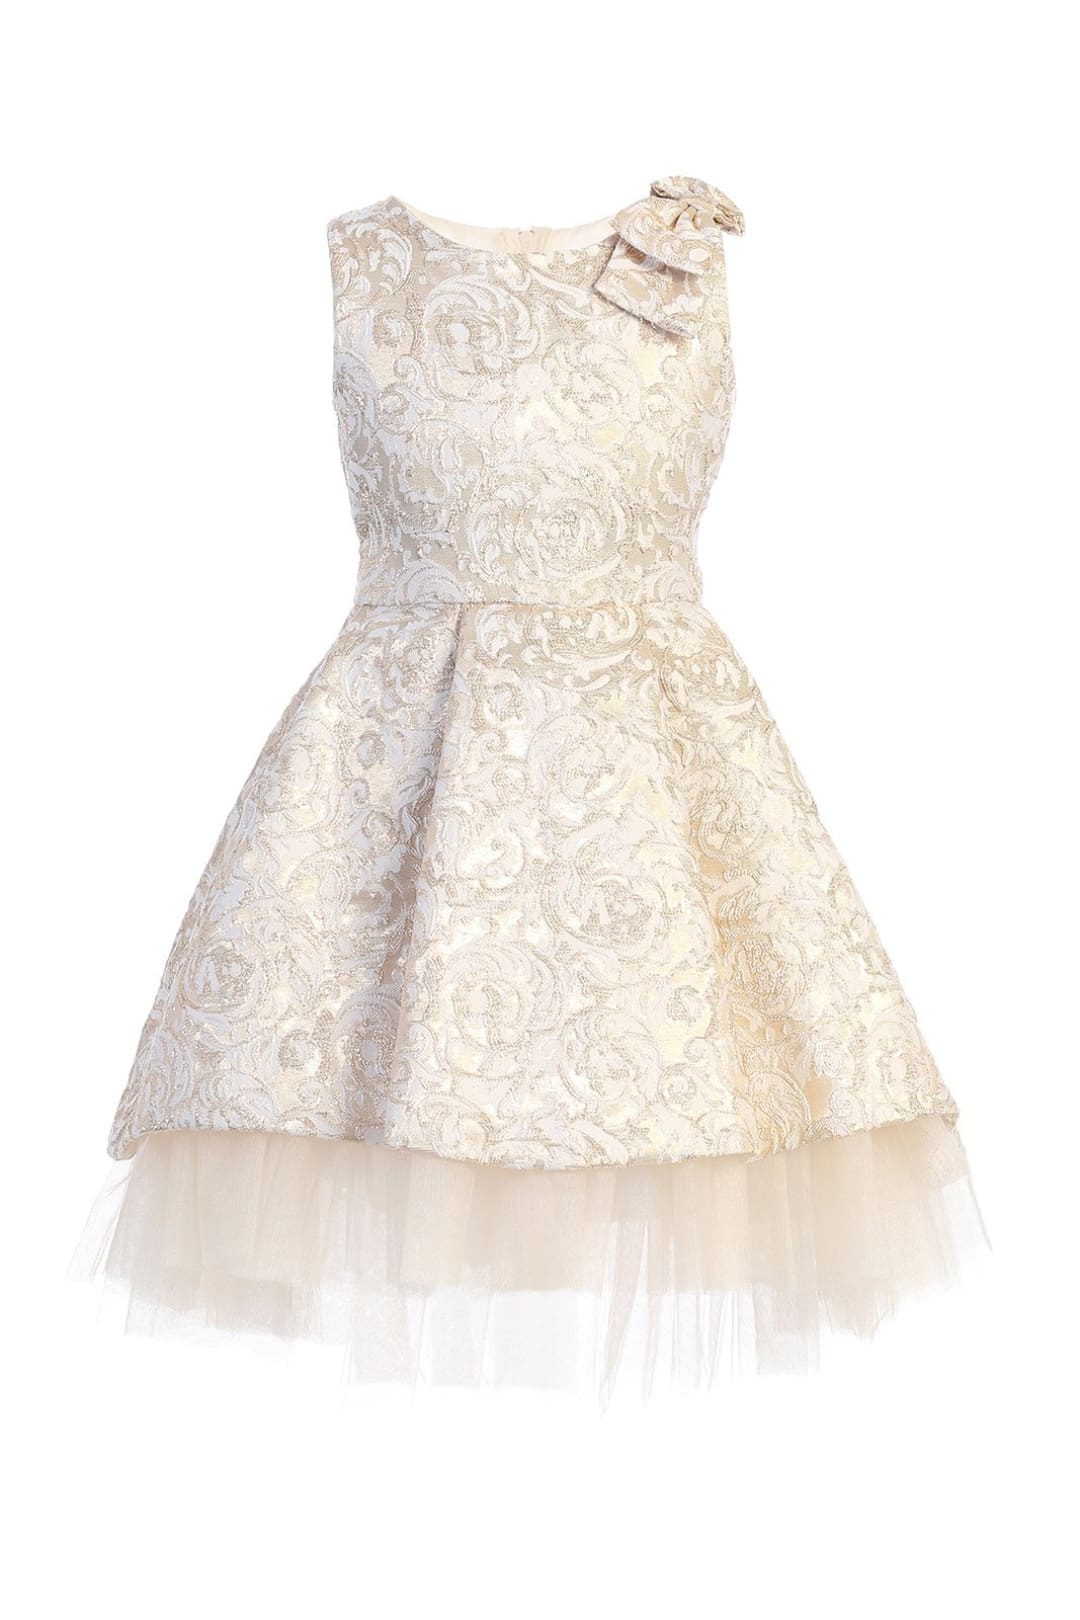 Fancy Hi Low Girls Dress - ivory / 2